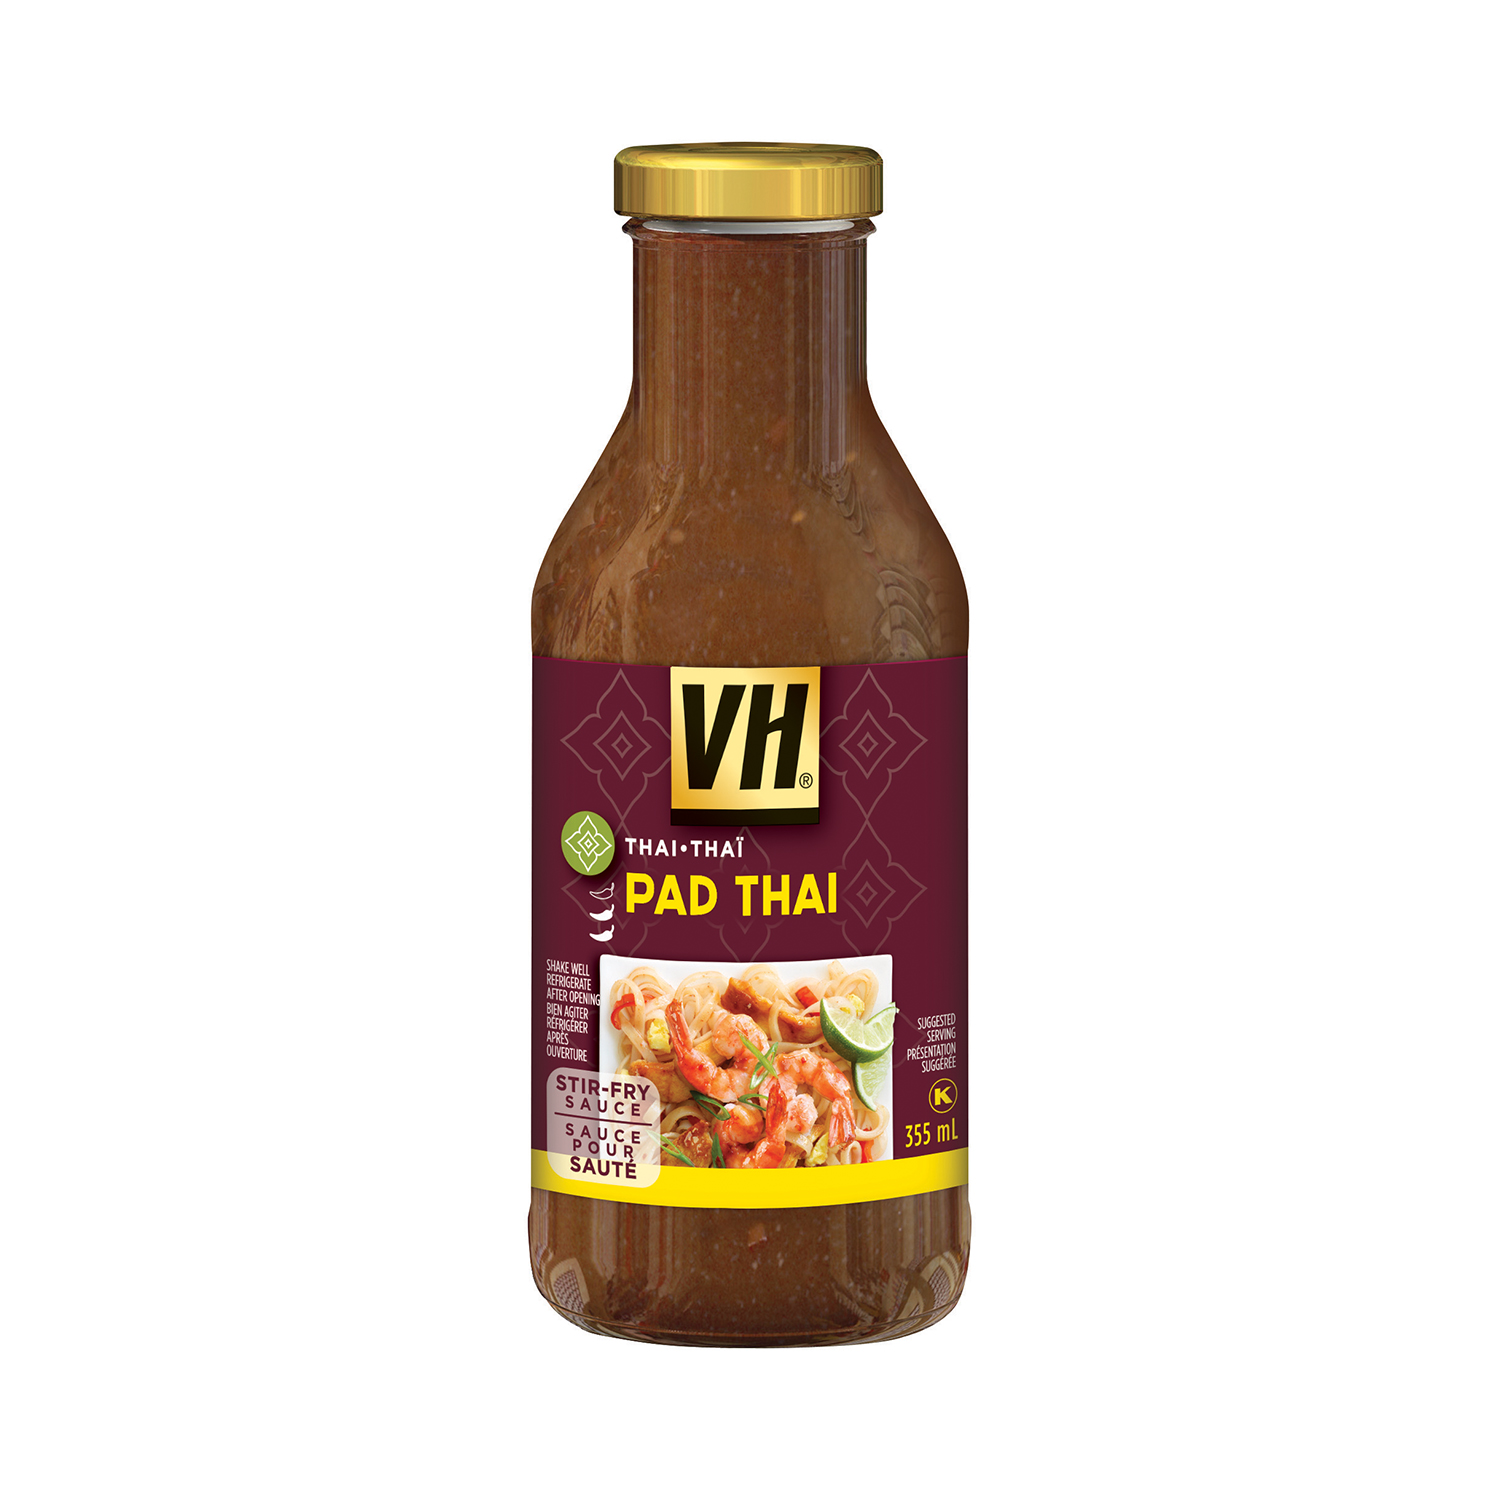 how to cook with vh general tao sauce